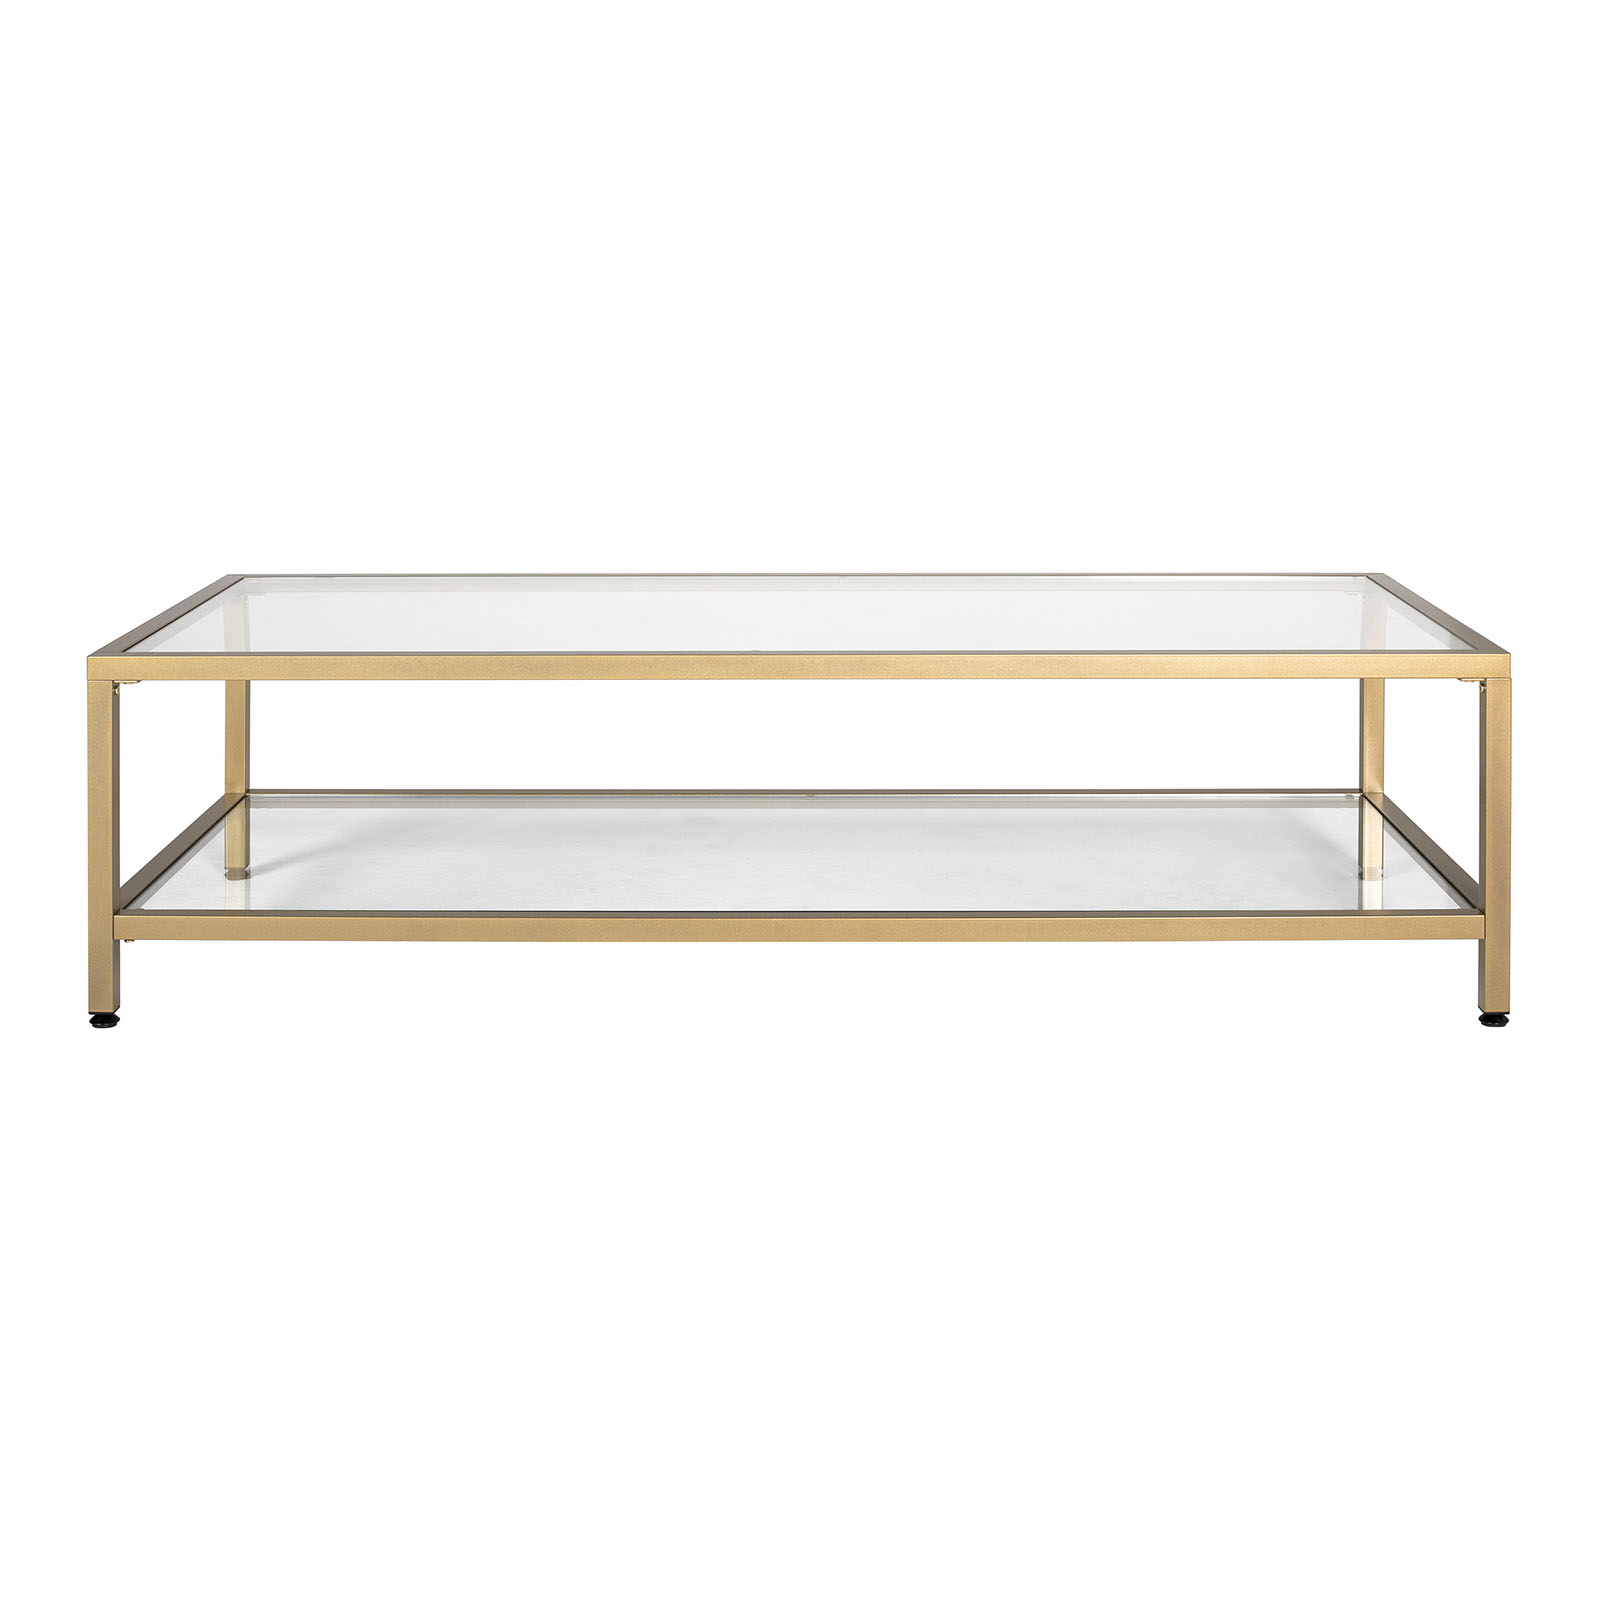 71034 Camber Rectangle Coffee Table front